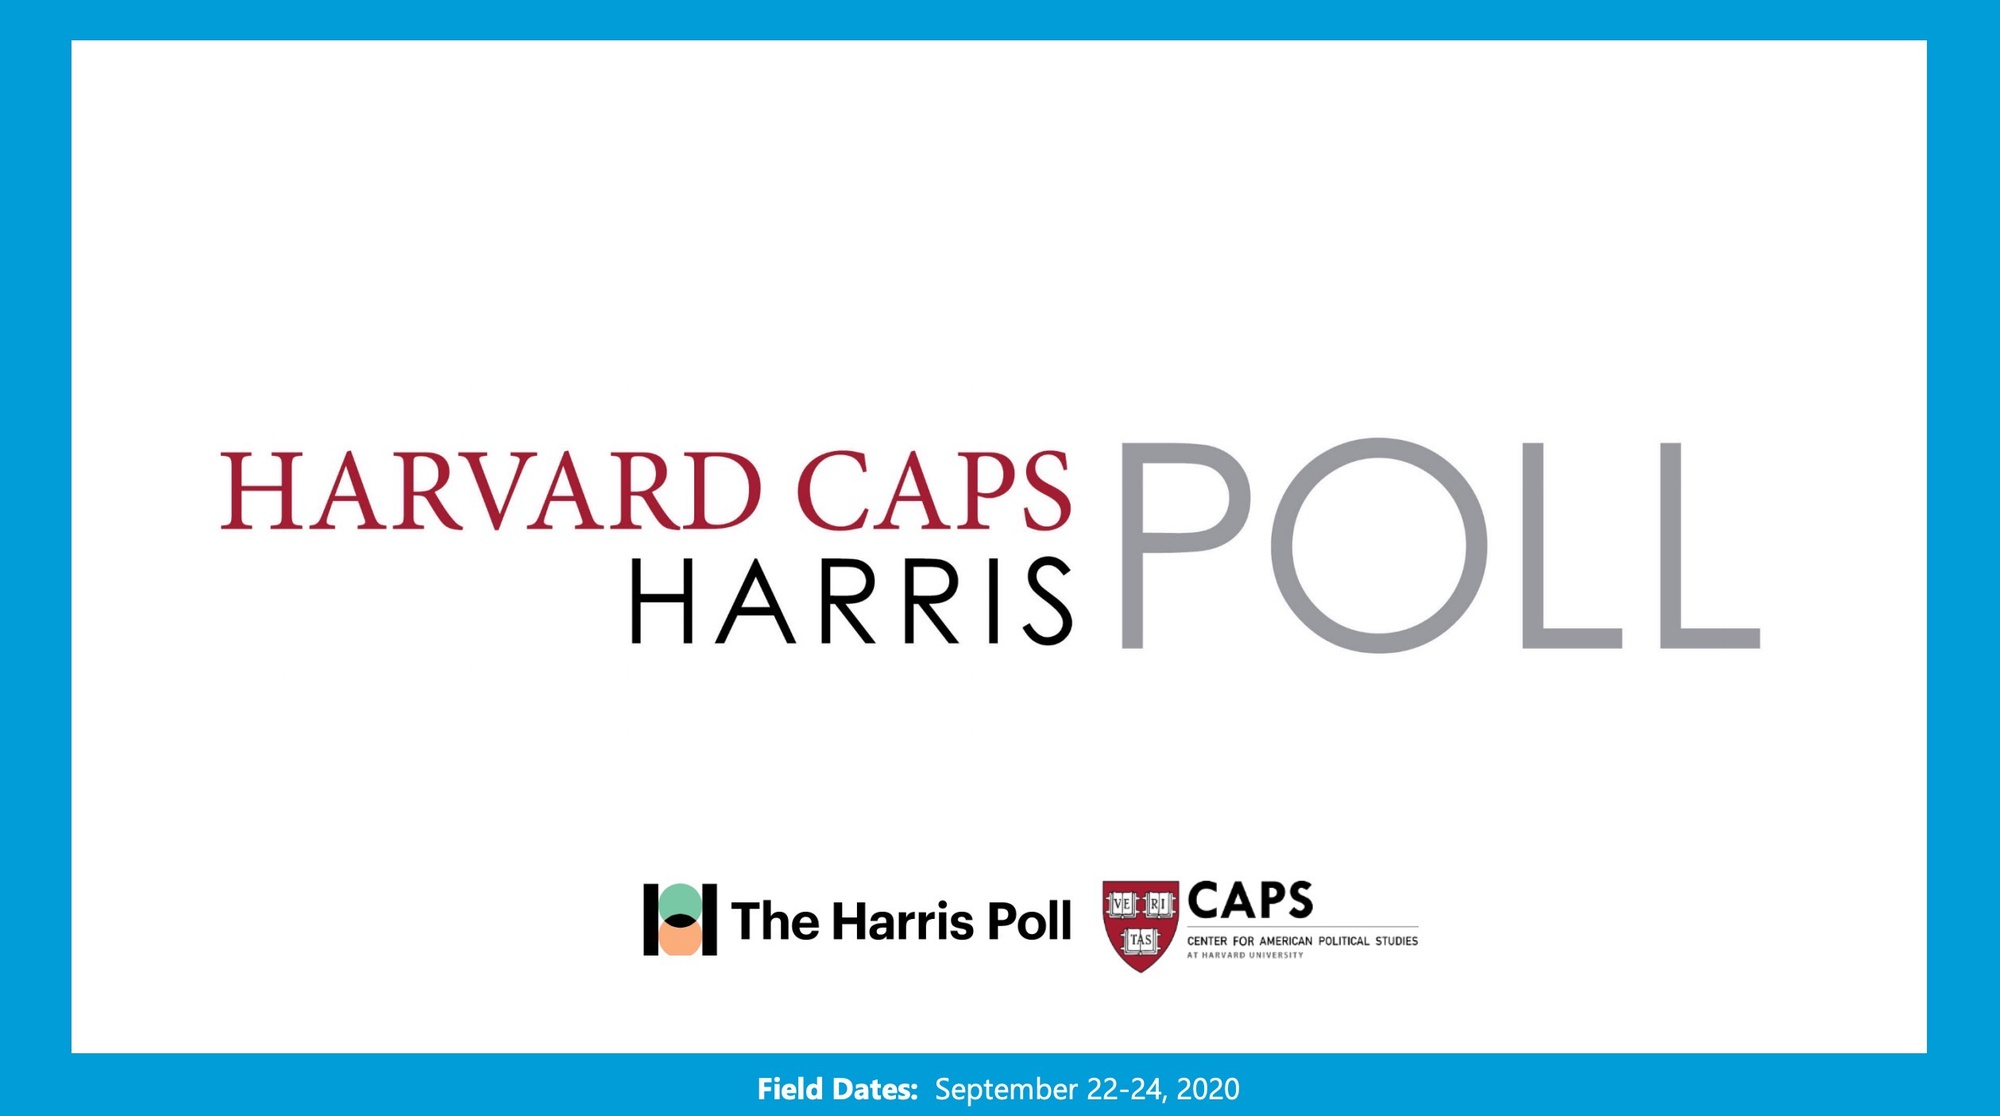 The Center for American Political Studies (CAPS) / Harris Poll has been asking voters which candidate they believe will bring law and order to America since June.